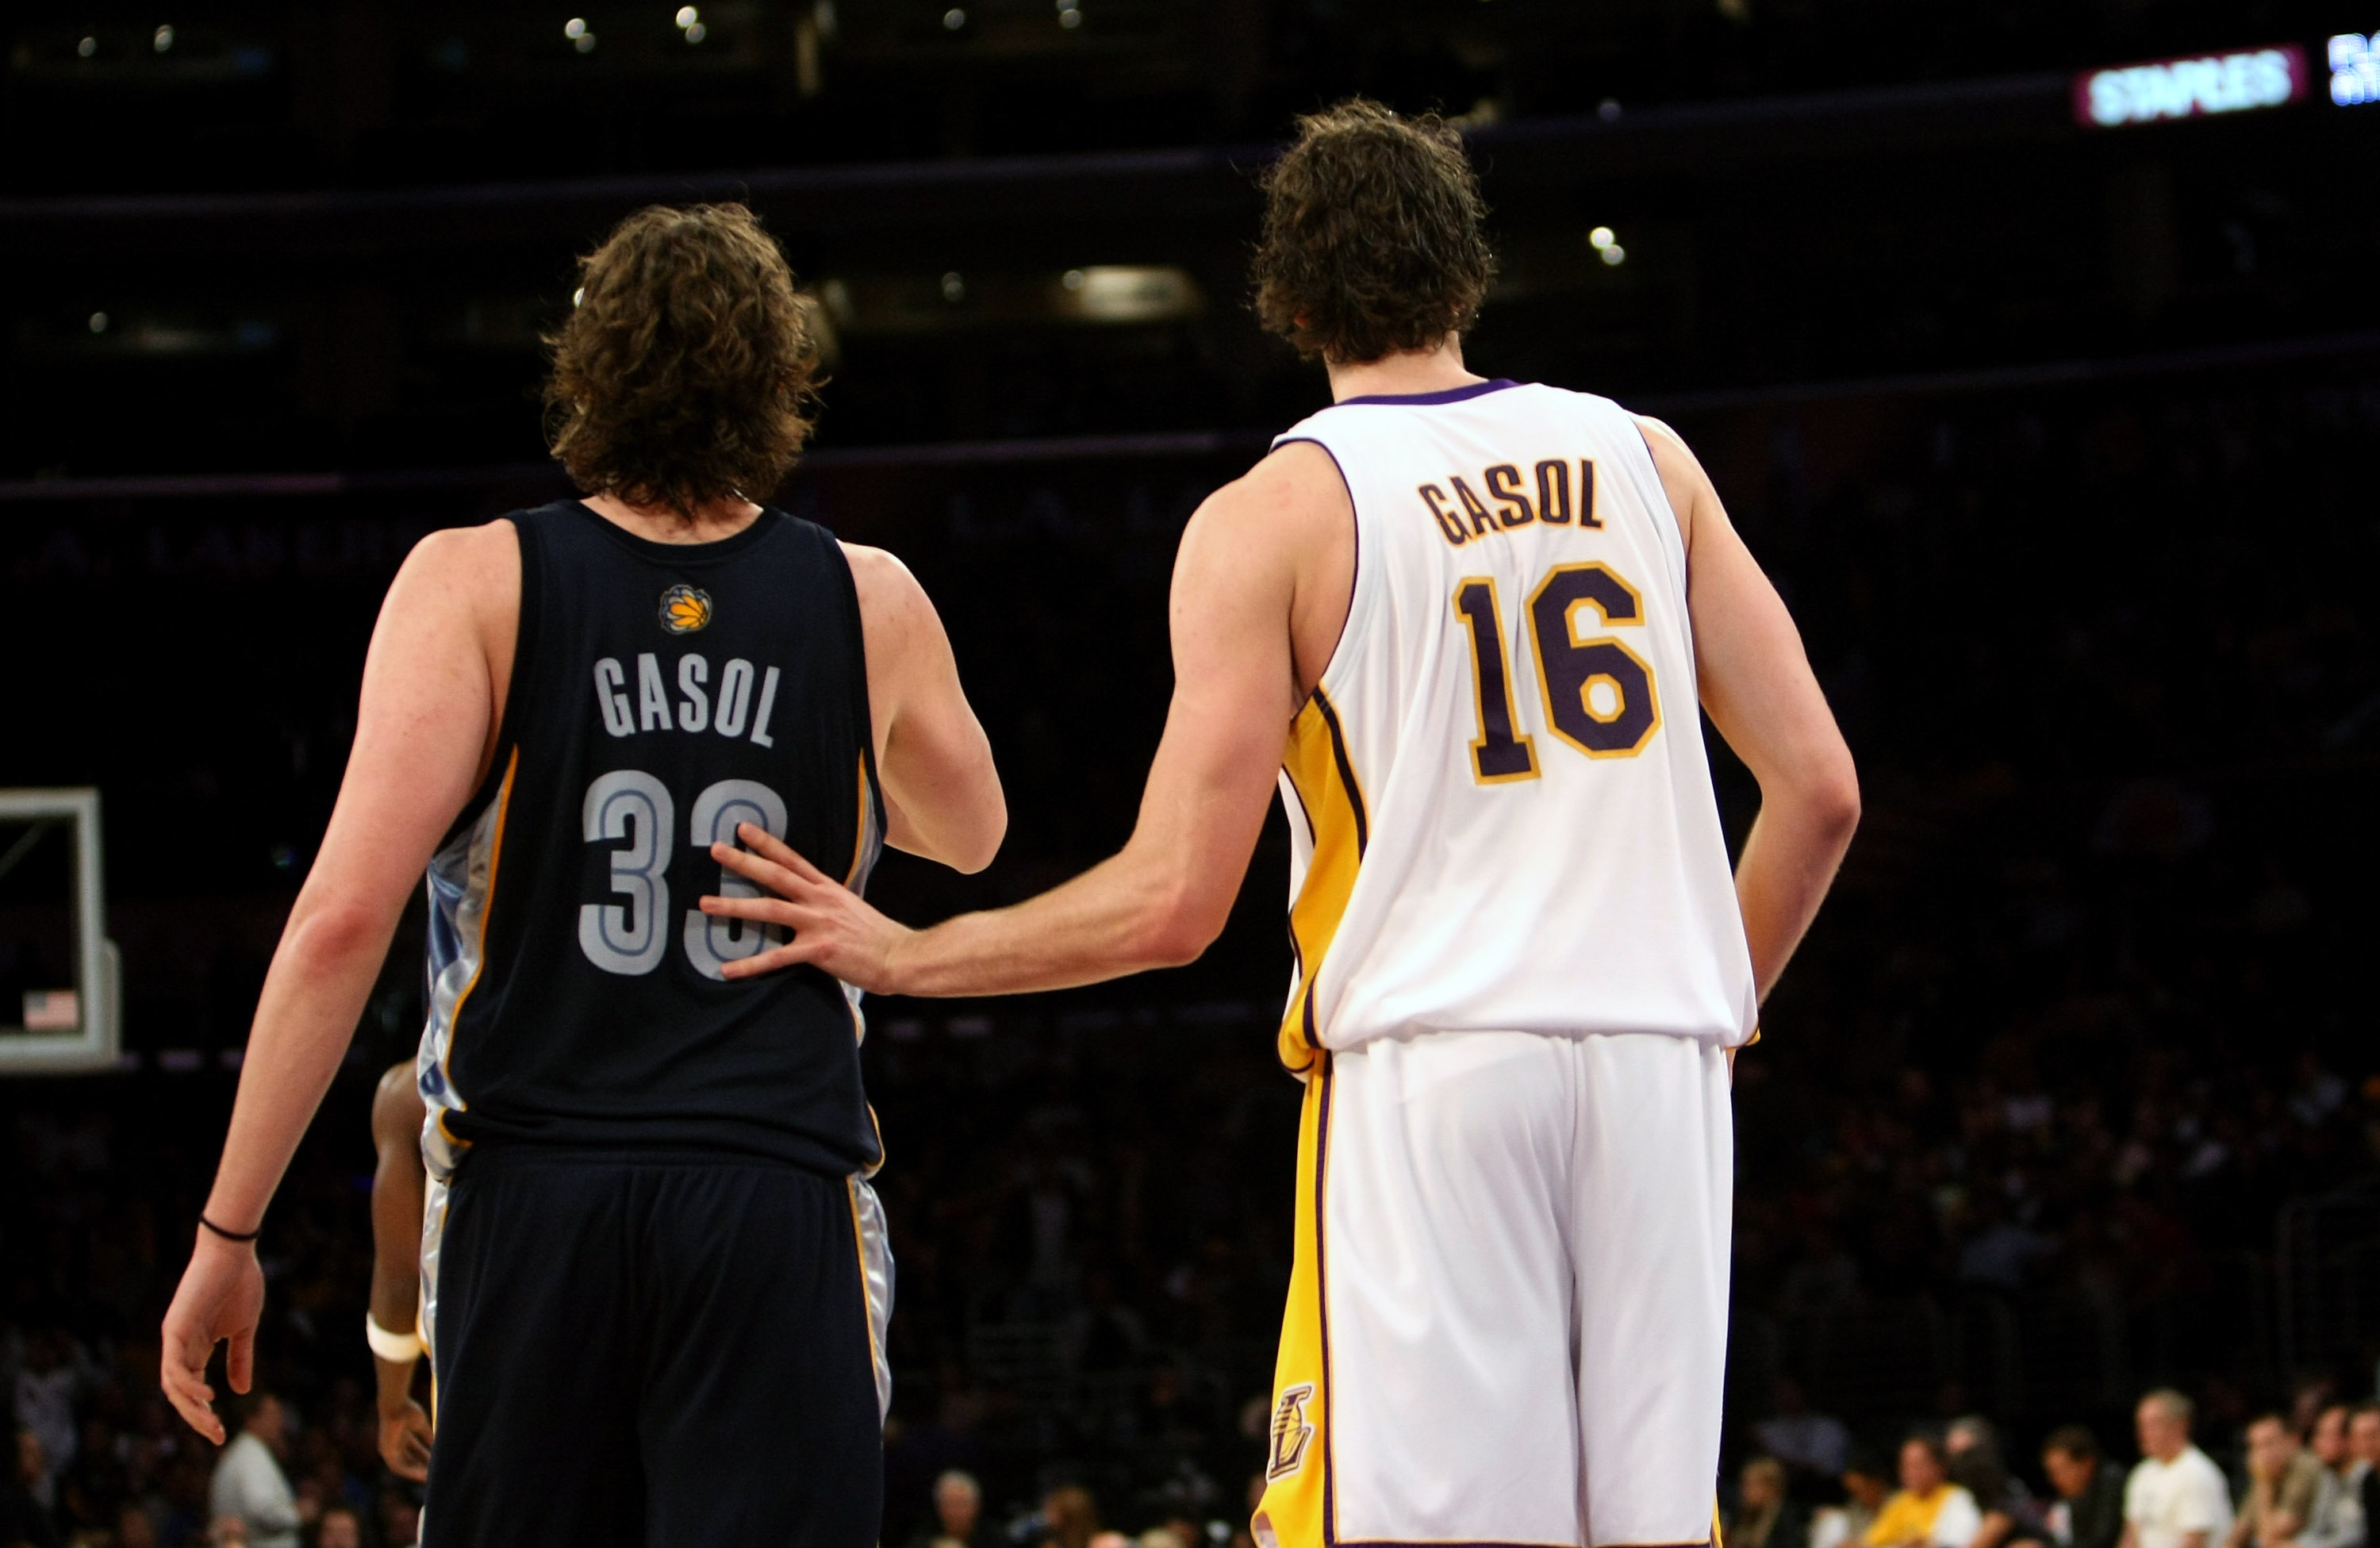 LOS ANGELES, CA - MARCH 3:  Pau Gasol #16 of the Los Angeles Lakers hand checks his brother Marc Gasol #33 of the Memphis Grizzlies at Staples Center March 3, 2009 in Los Angeles, California.  The Lakers won 99-89.  NOTE TO USER: User expressly acknowledg